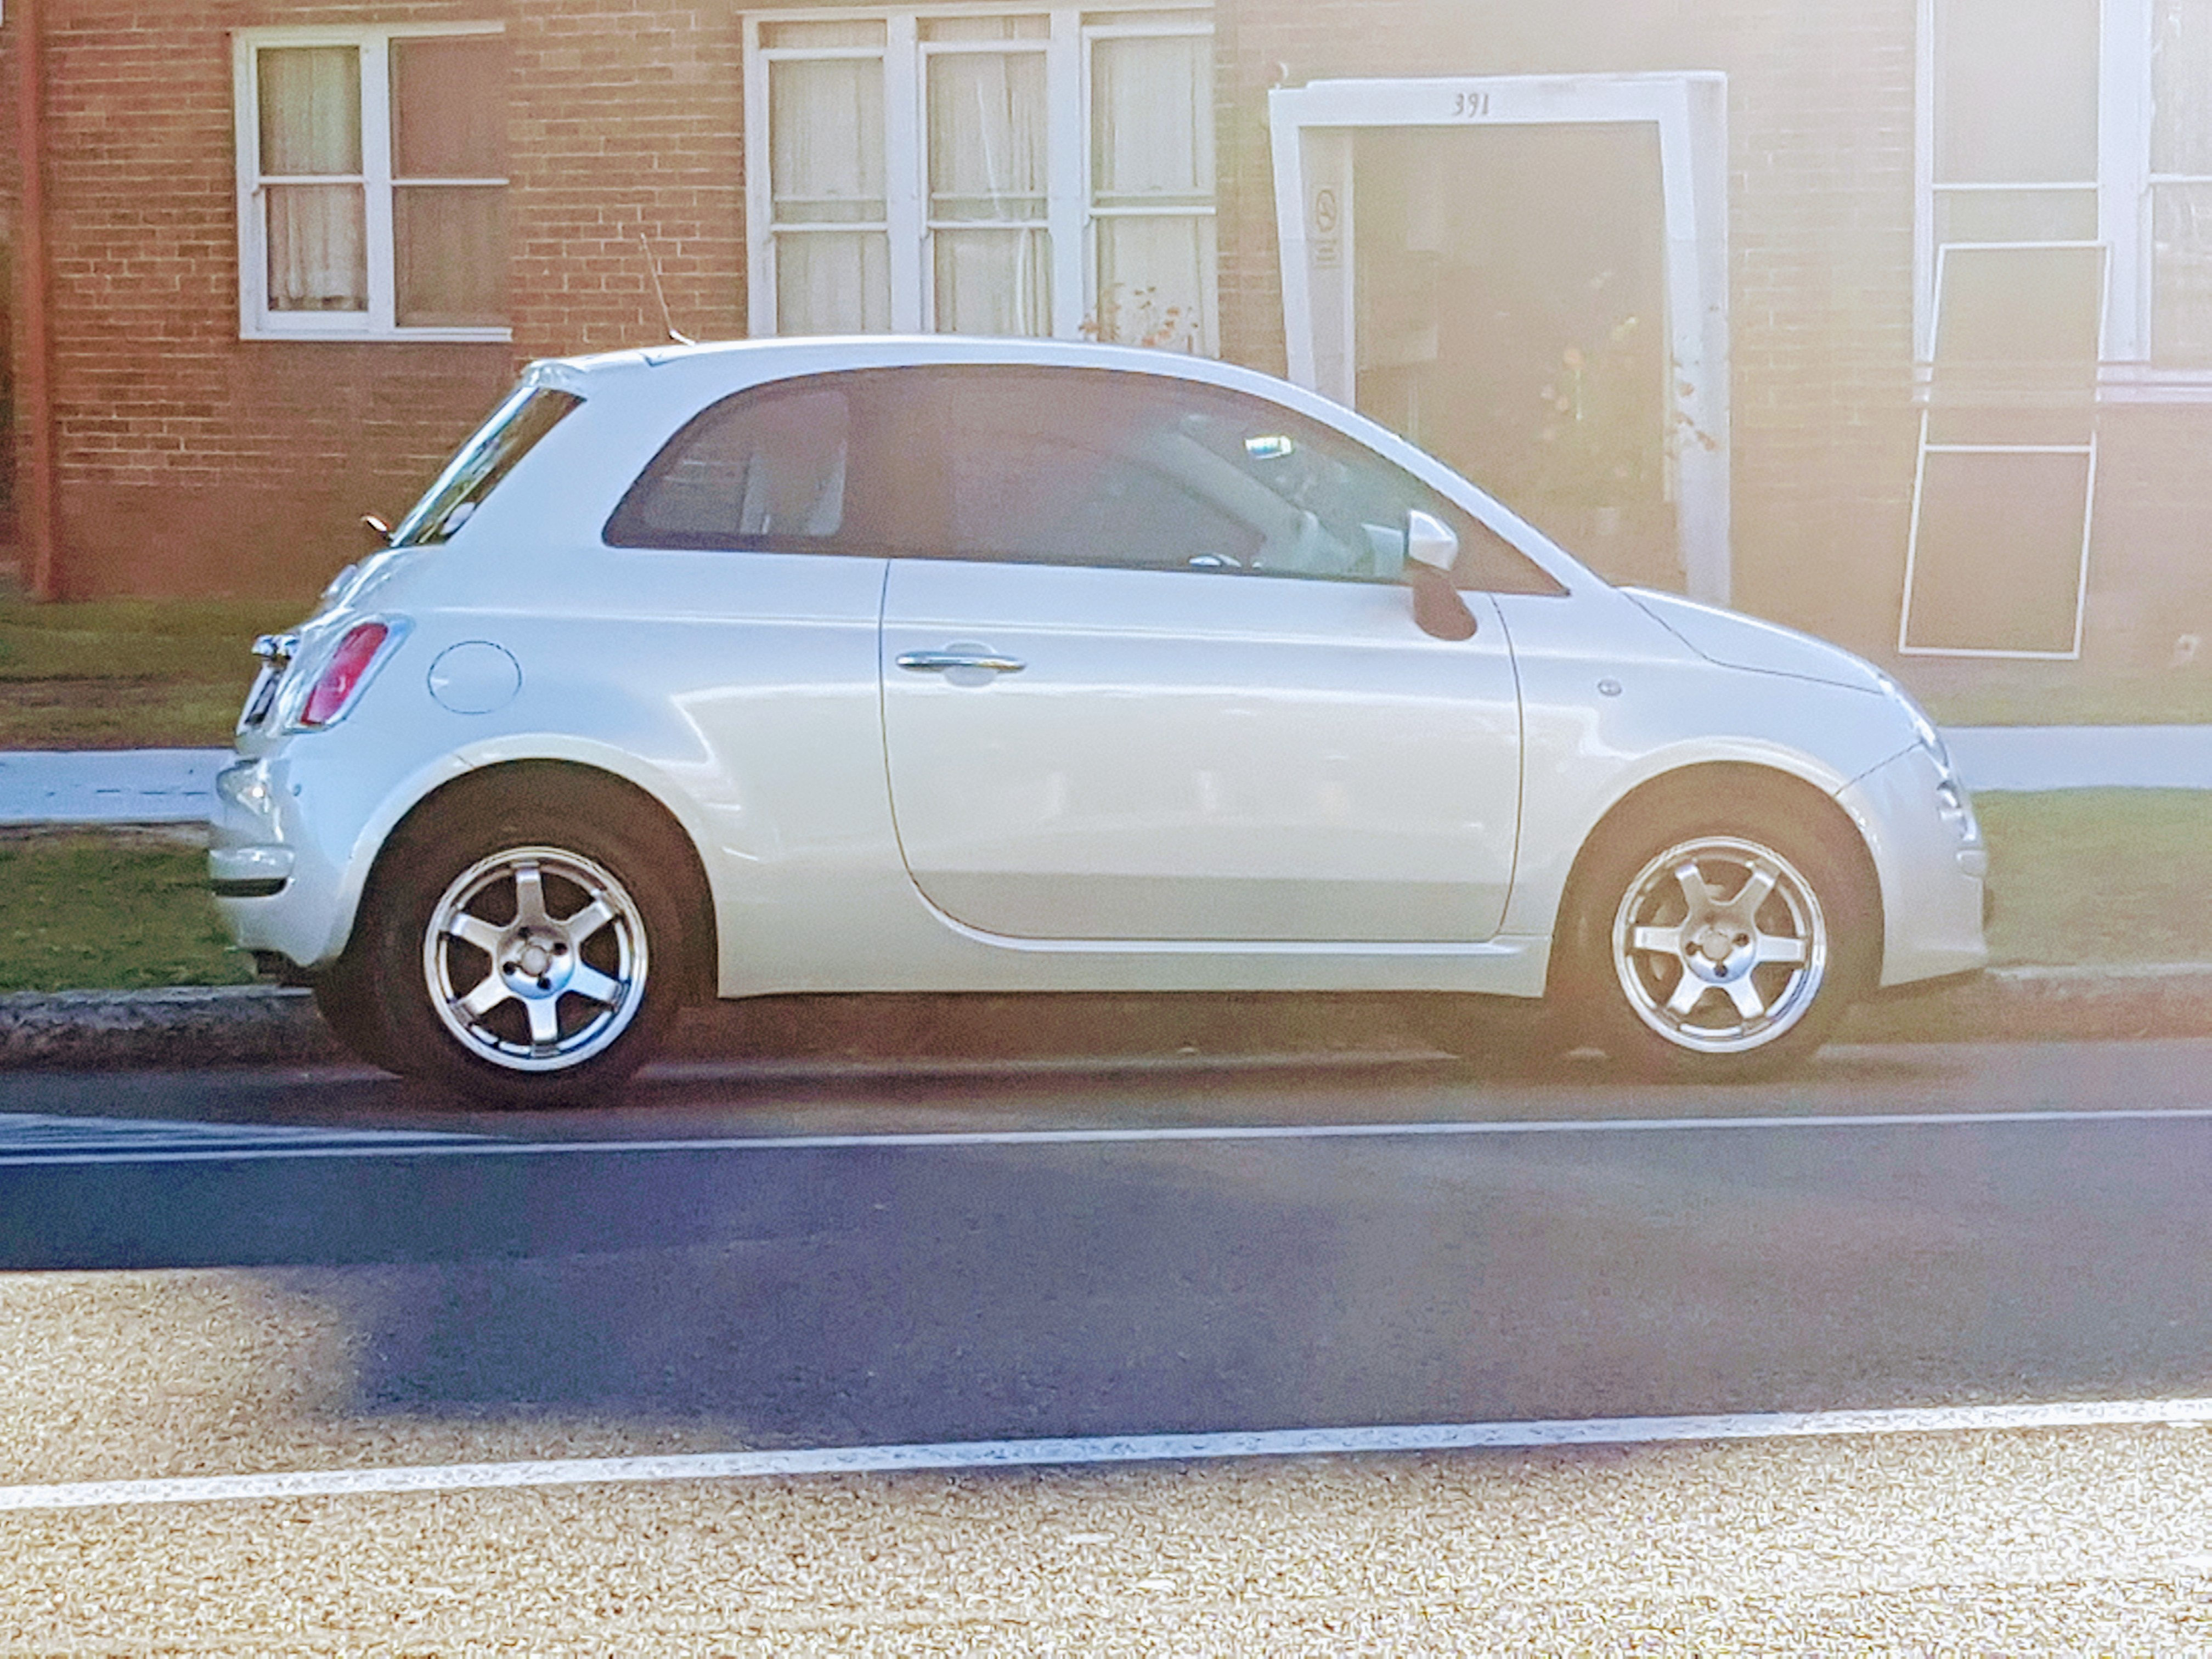 Picture of Lucinda's 2013 Other - Economy Fiat 500